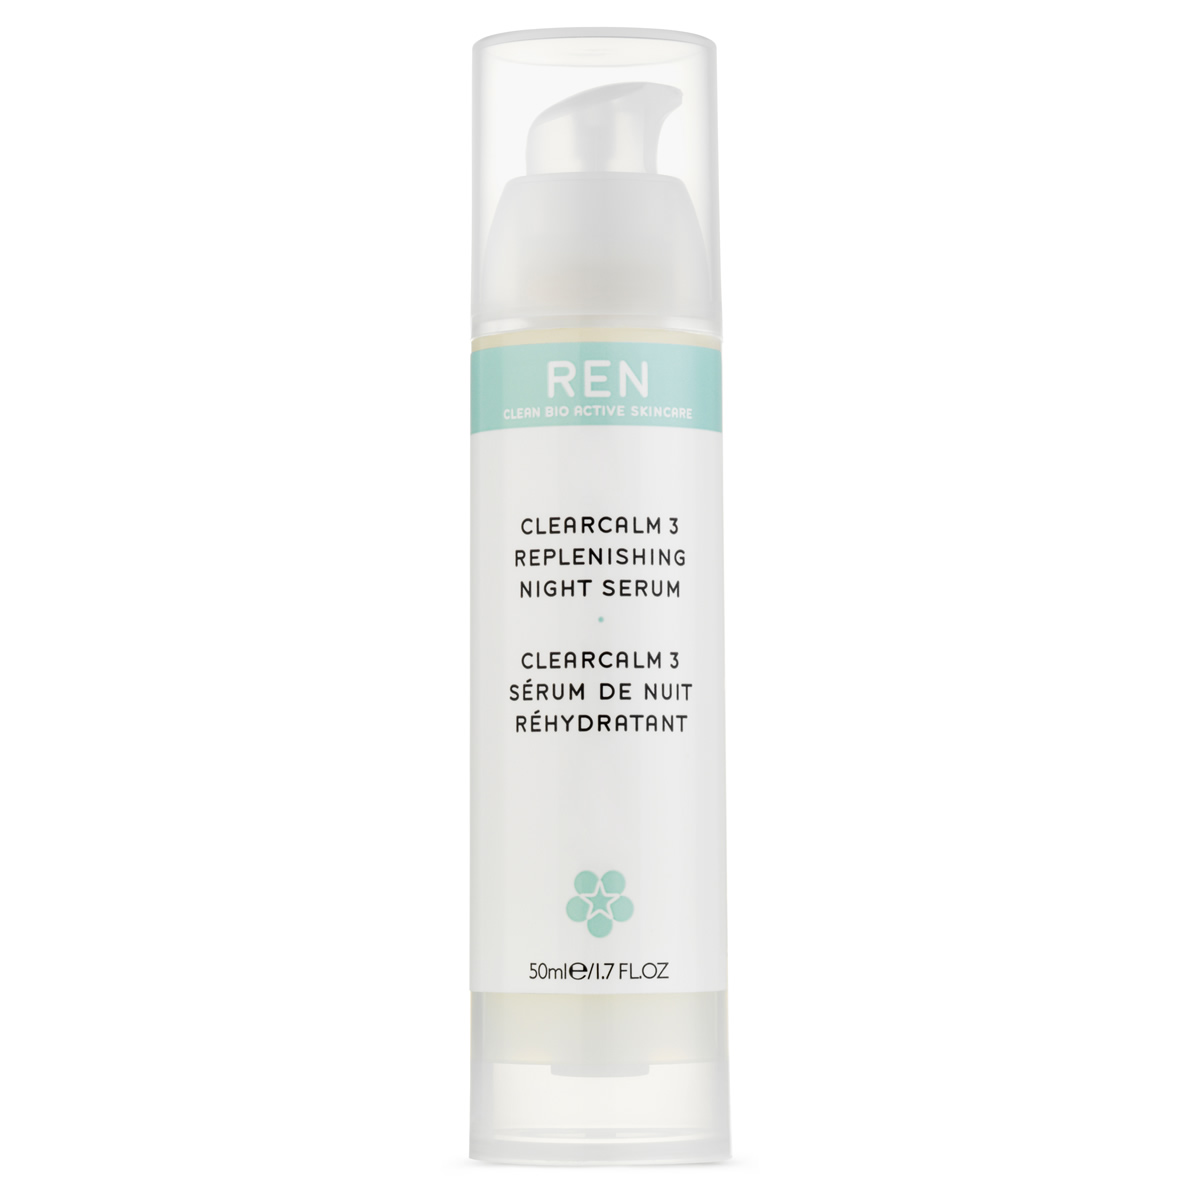 REN ClearCalm 3 Replenishing Clarity Serum